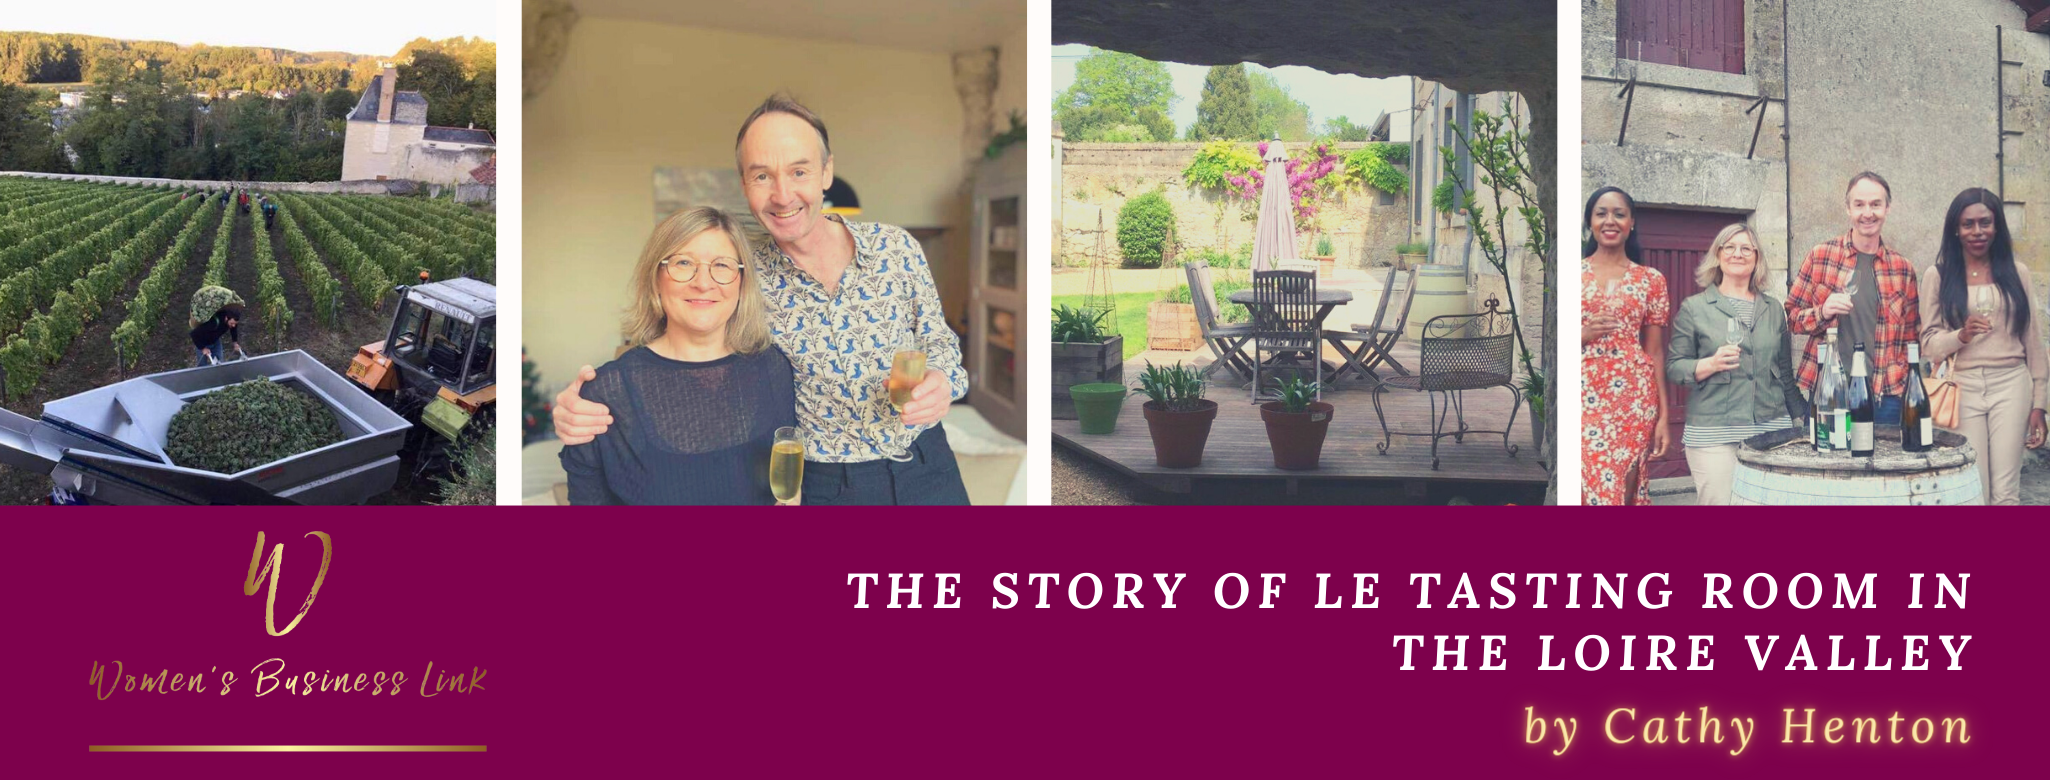 The story of Le Tasting Room in the Loire Valley